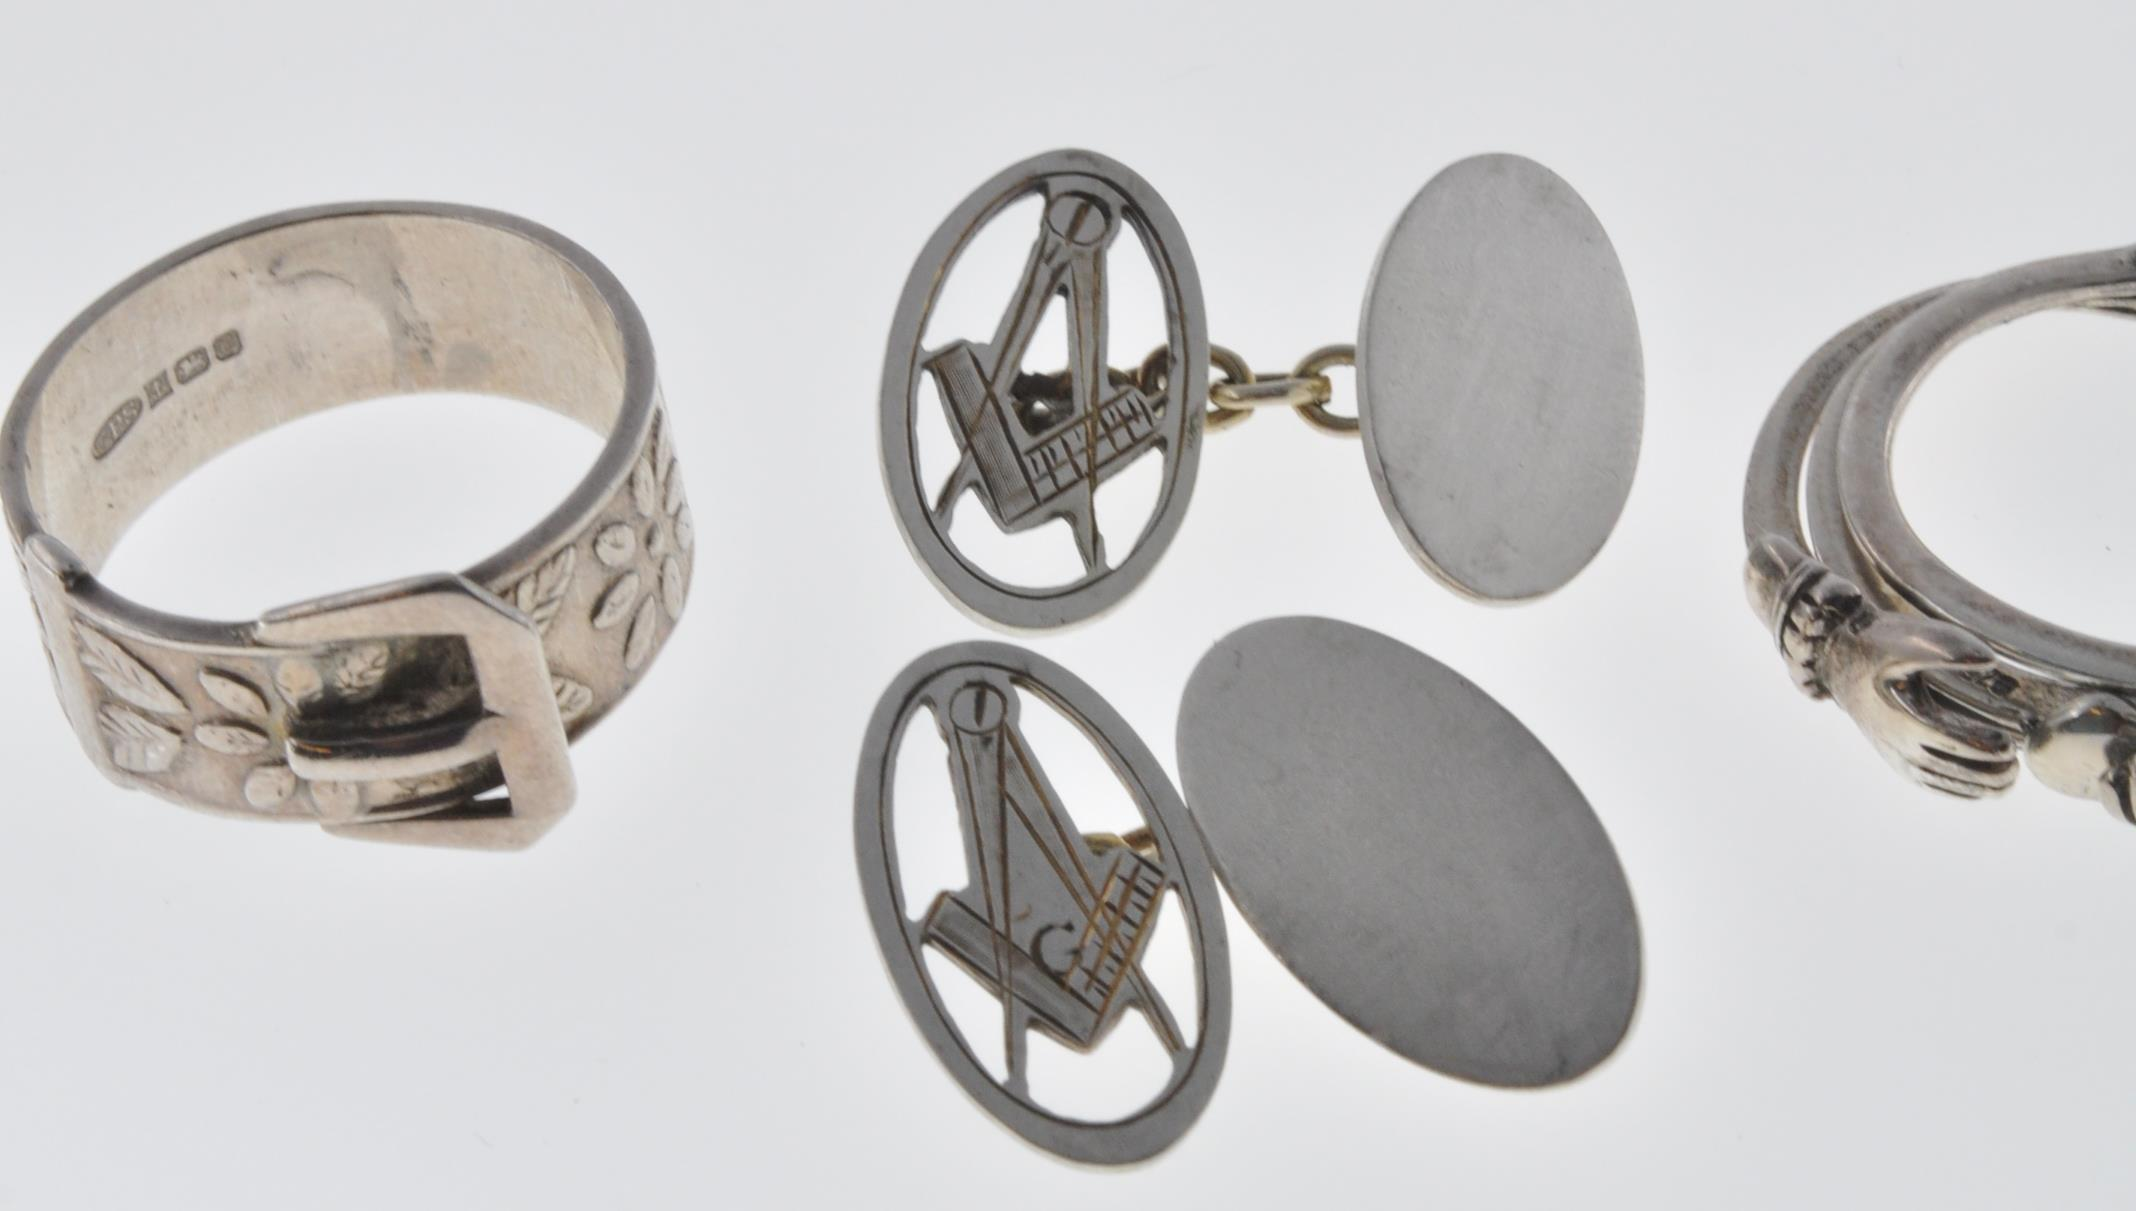 VINTAGE MASONIC CUFFLINKS AND TWO SILVER RINGS - Image 4 of 7